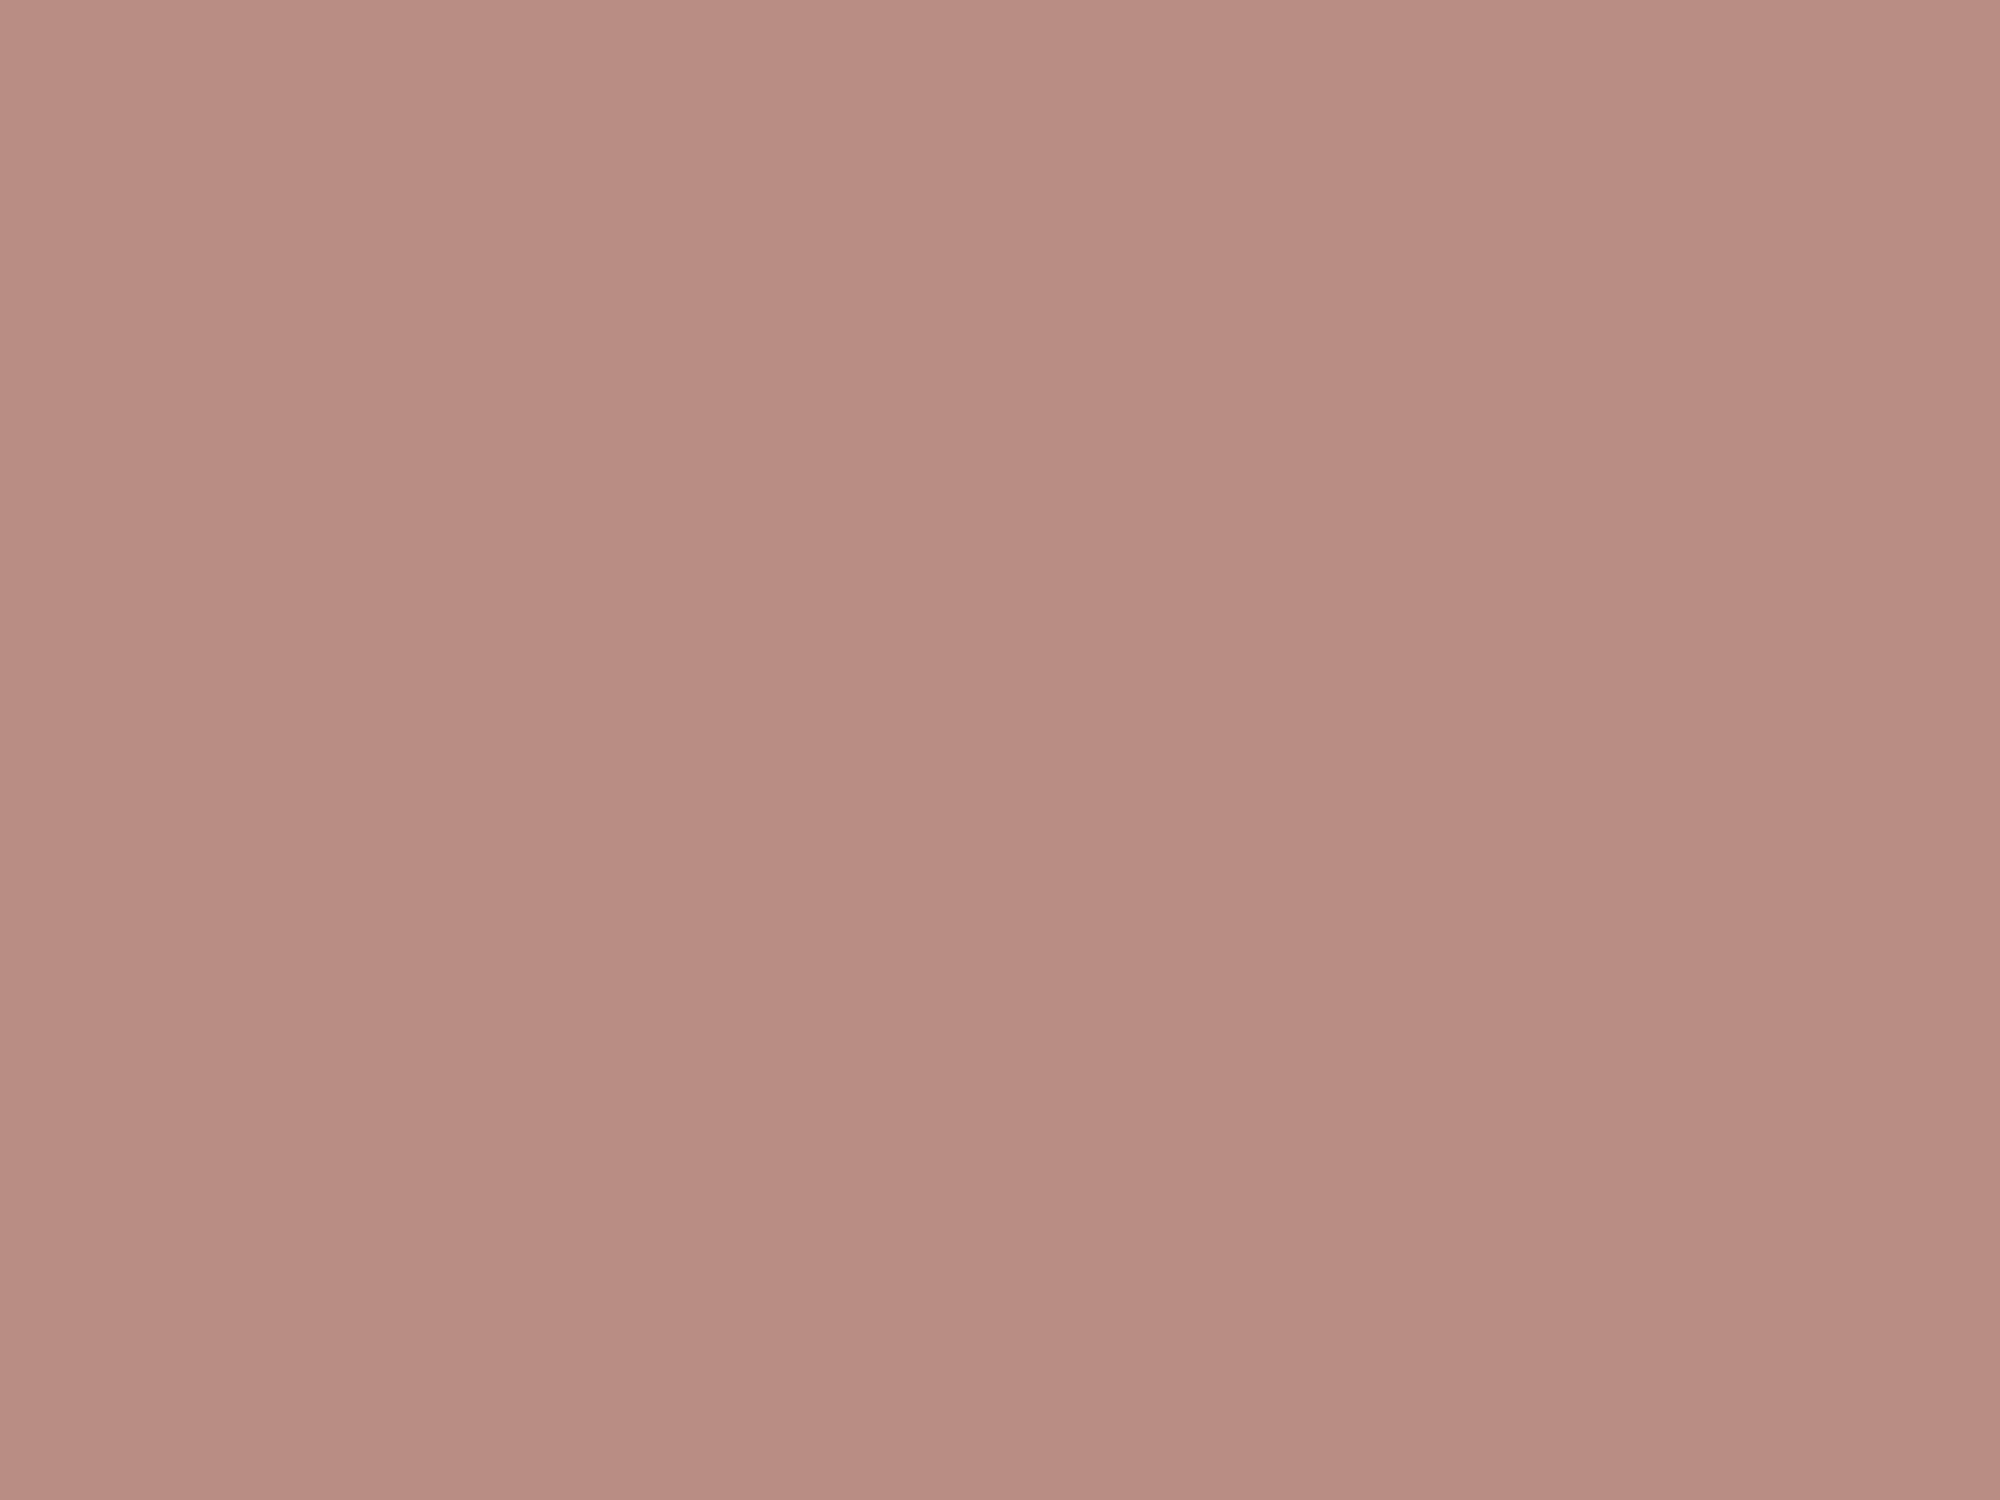 - 46. NCS S 3020- Y80R* DUSTY PINK